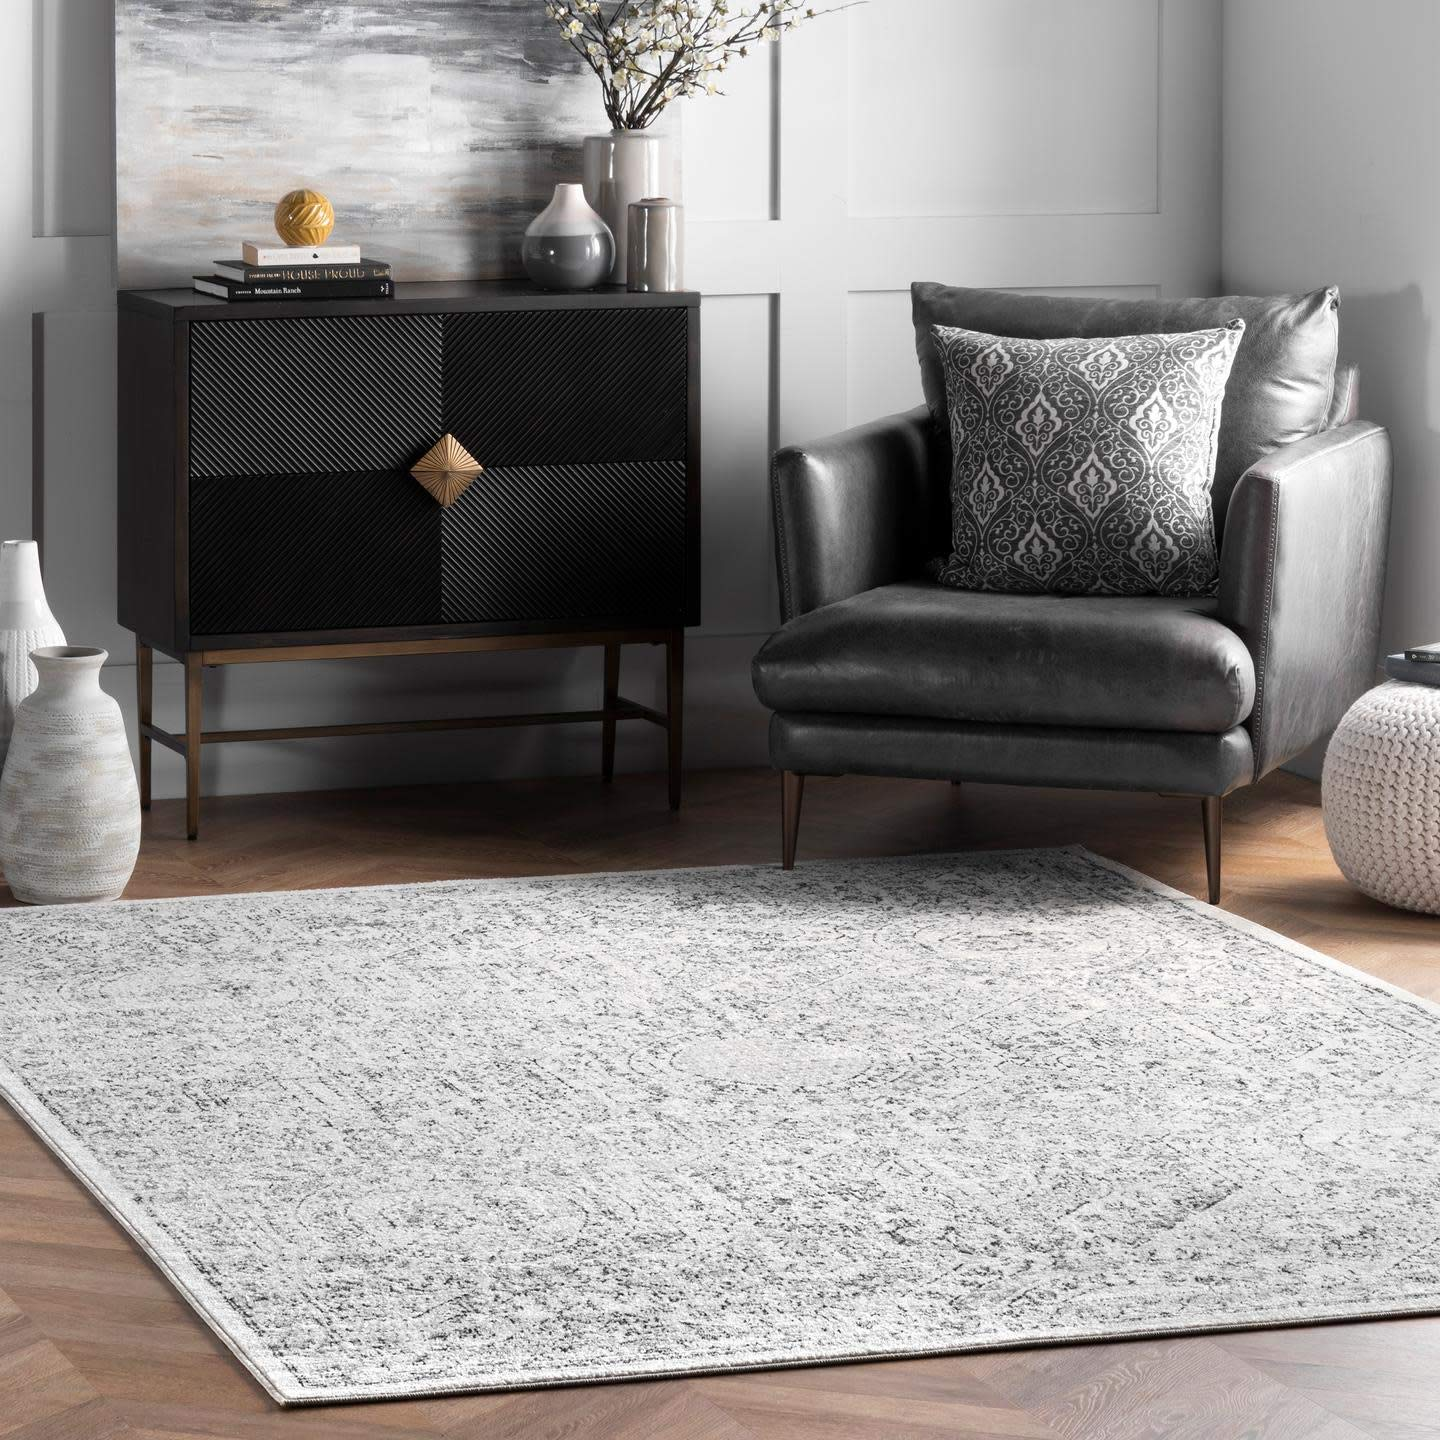 Amazon Com Nuloom Minta Vintage Area Rug 8 X 10 Grey Furniture Decor